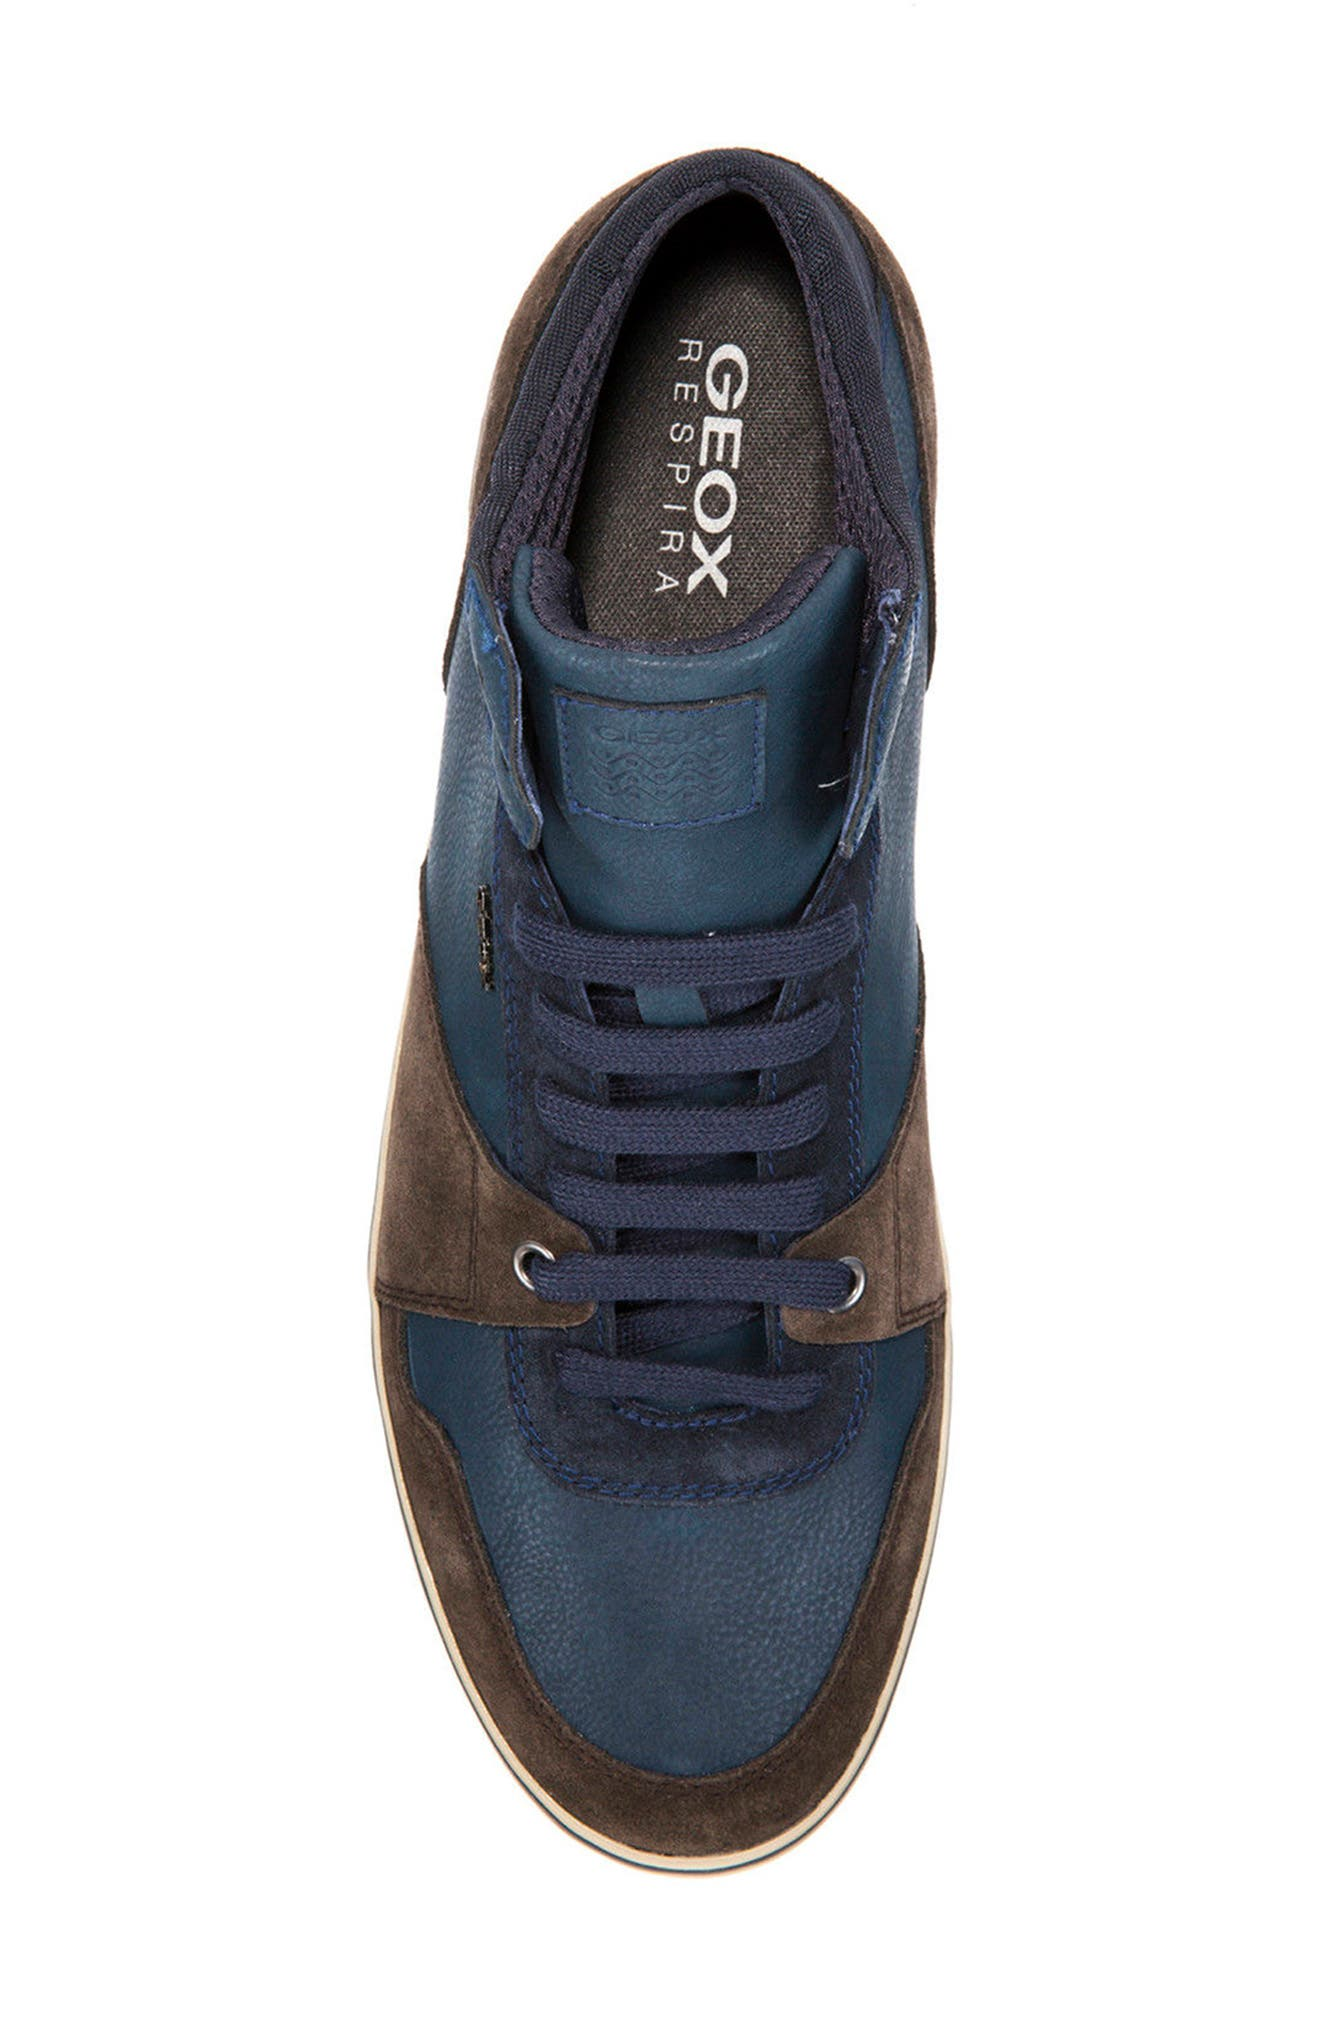 Box 29 High Top Sneaker,                             Alternate thumbnail 5, color,                             Dark Coffee/ Navy